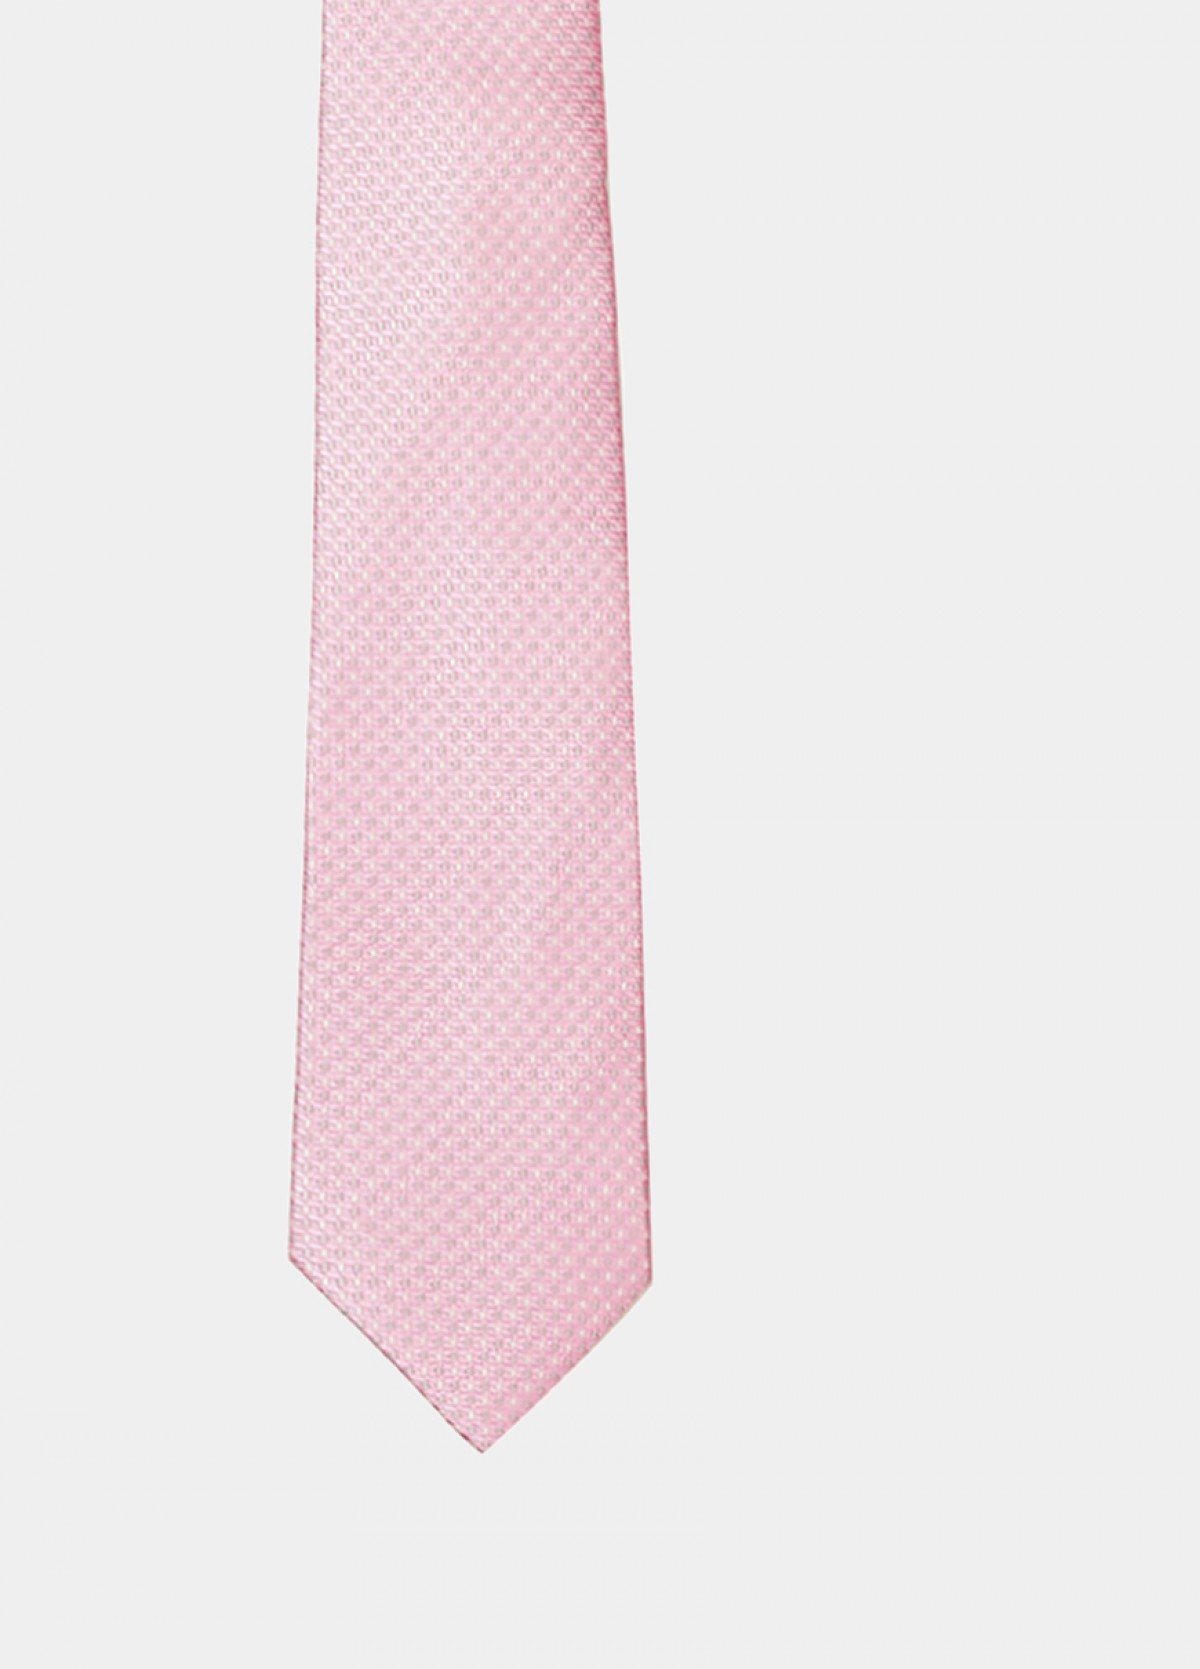 The Pink Stain Resistant Tie